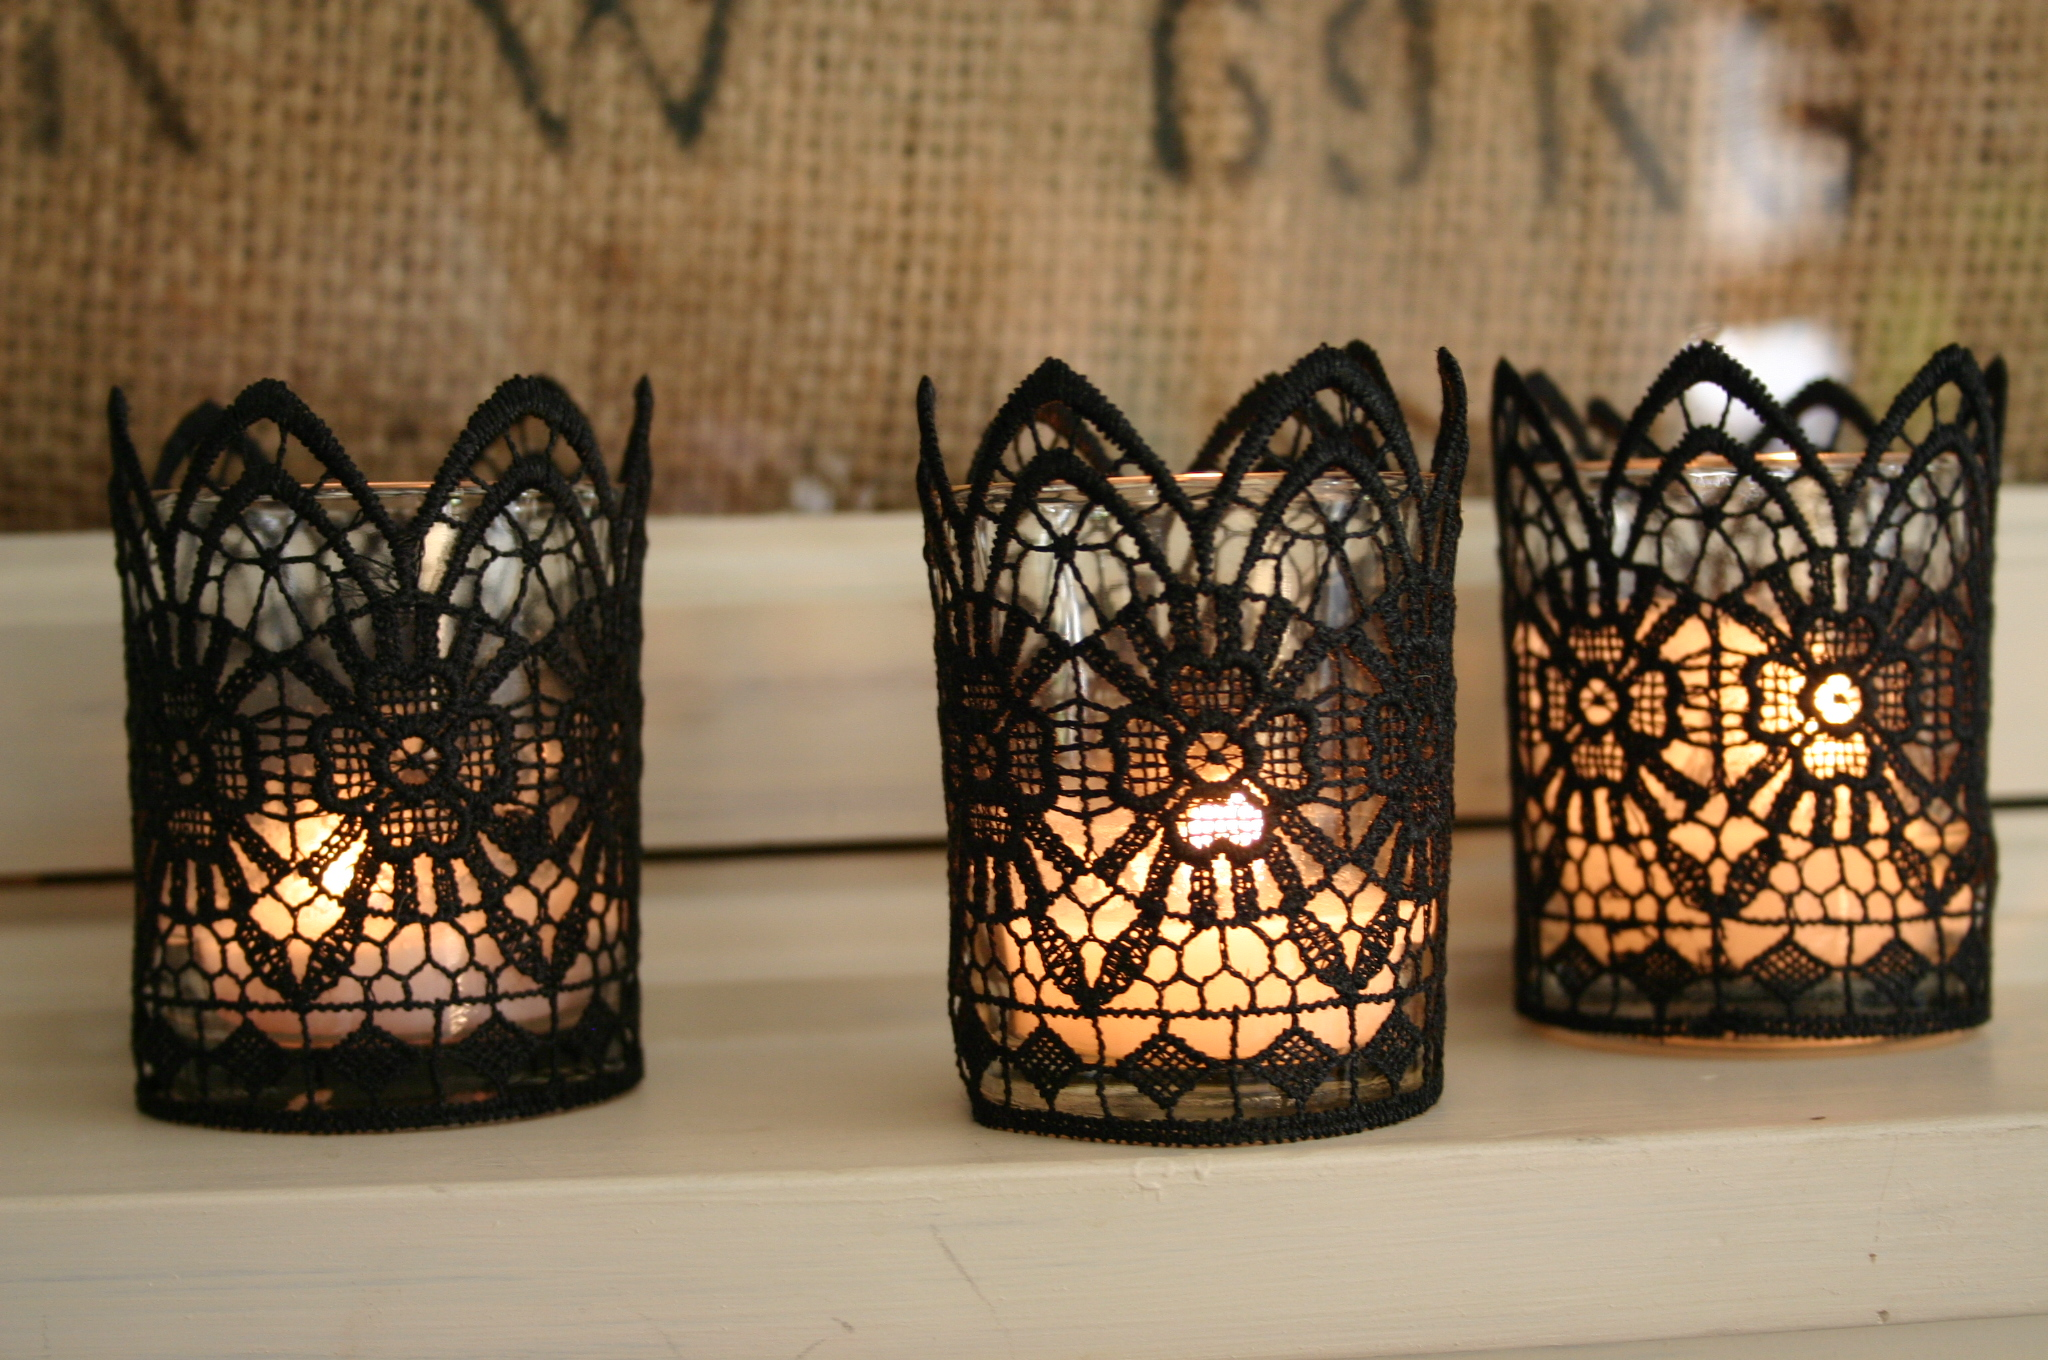 Simple glass votives are wrapped in black lace - these have a gothic feel to them, perfect for Halloween.